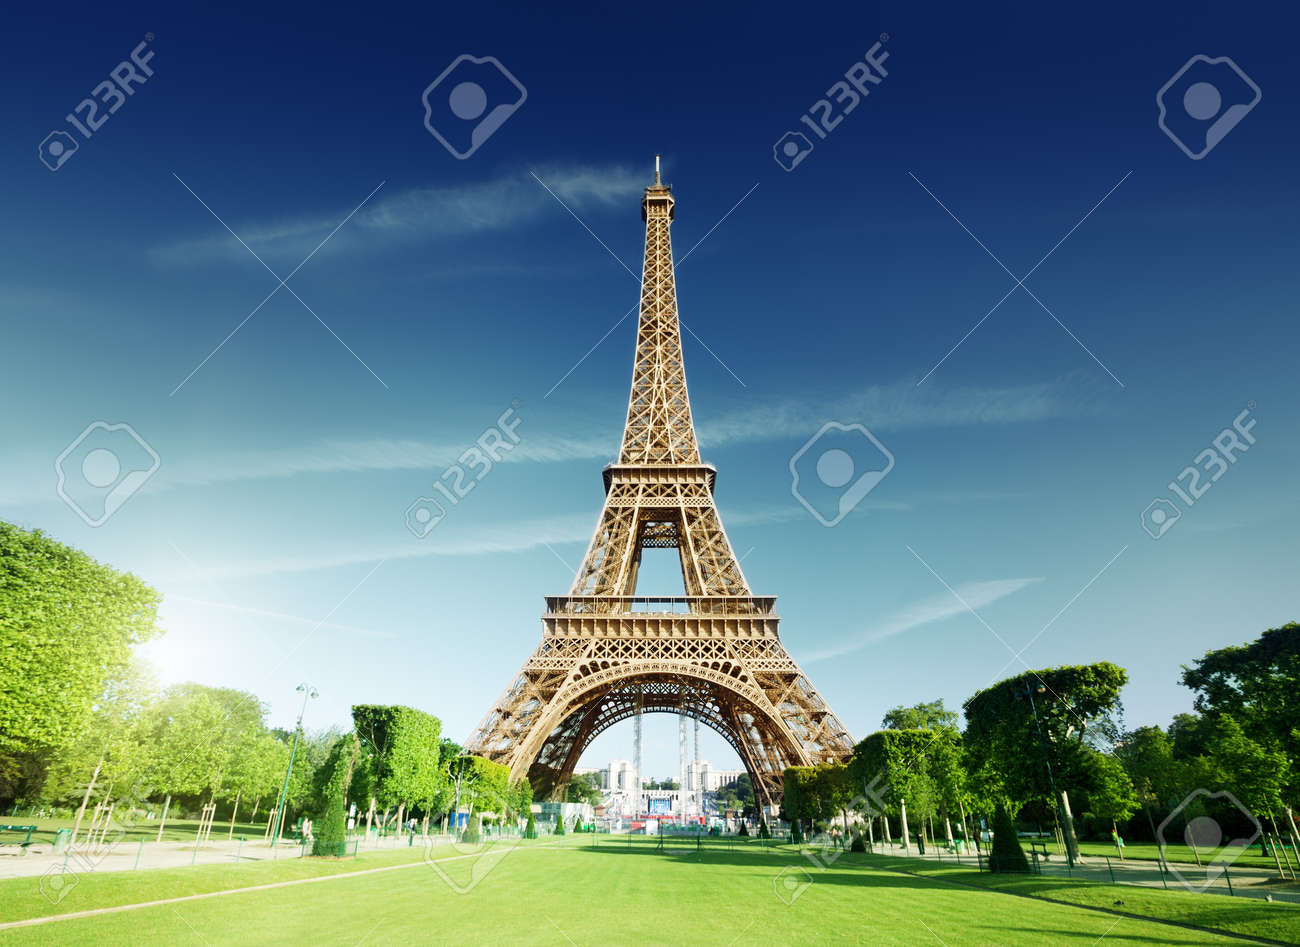 Sunny Morning And Eiffel Tower Paris France Stock Photo Picture And Royalty Free Image Image 16214971